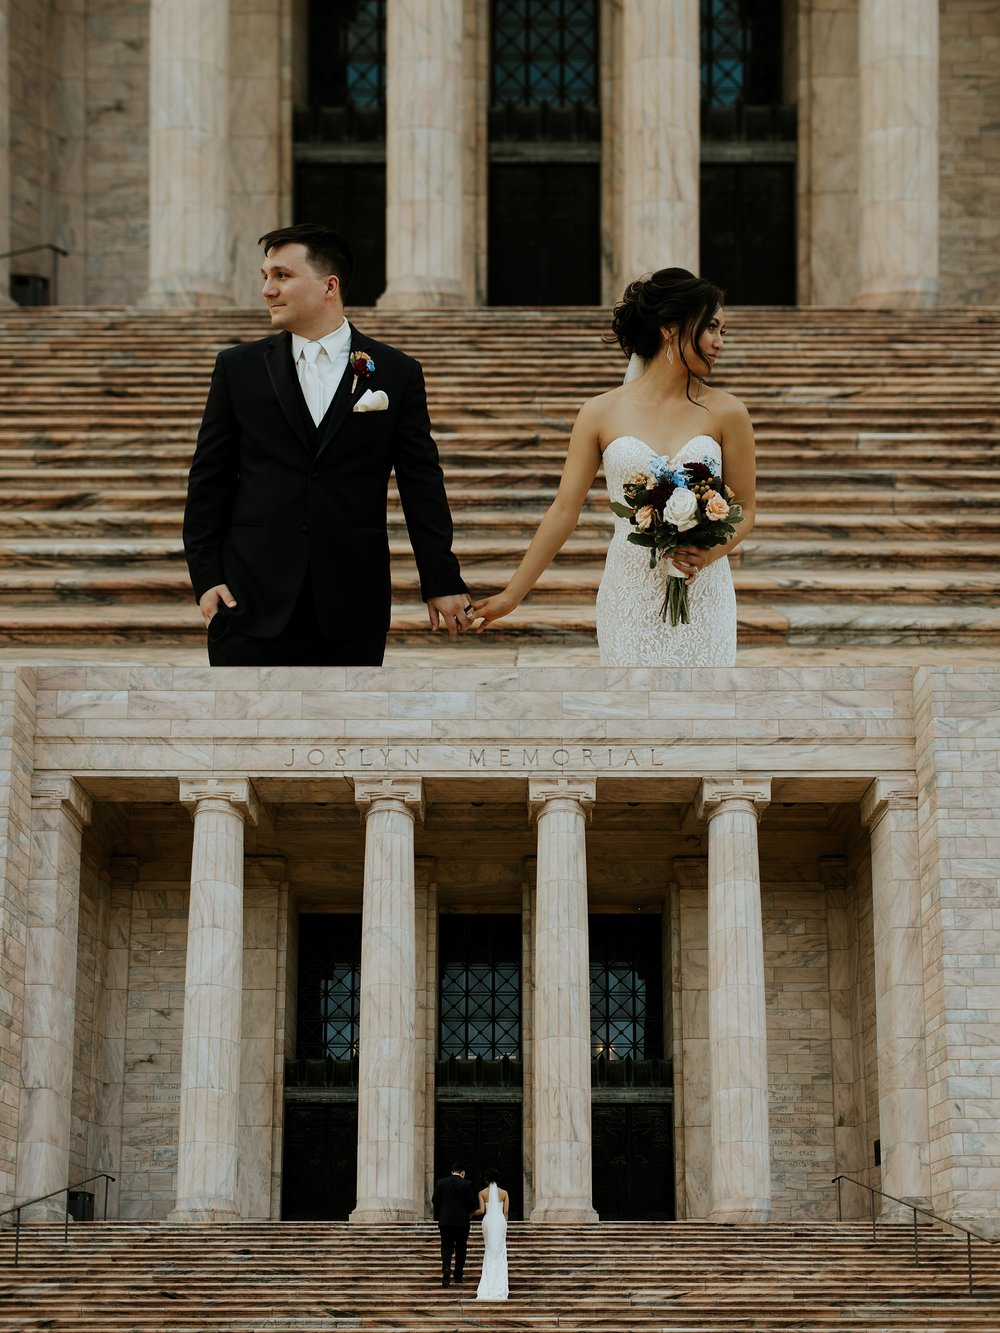 Whimsical Joslyn Art Museum Wedding by Trin Jensen - Omaha Nebraska Wedding Photographer_0019.jpg